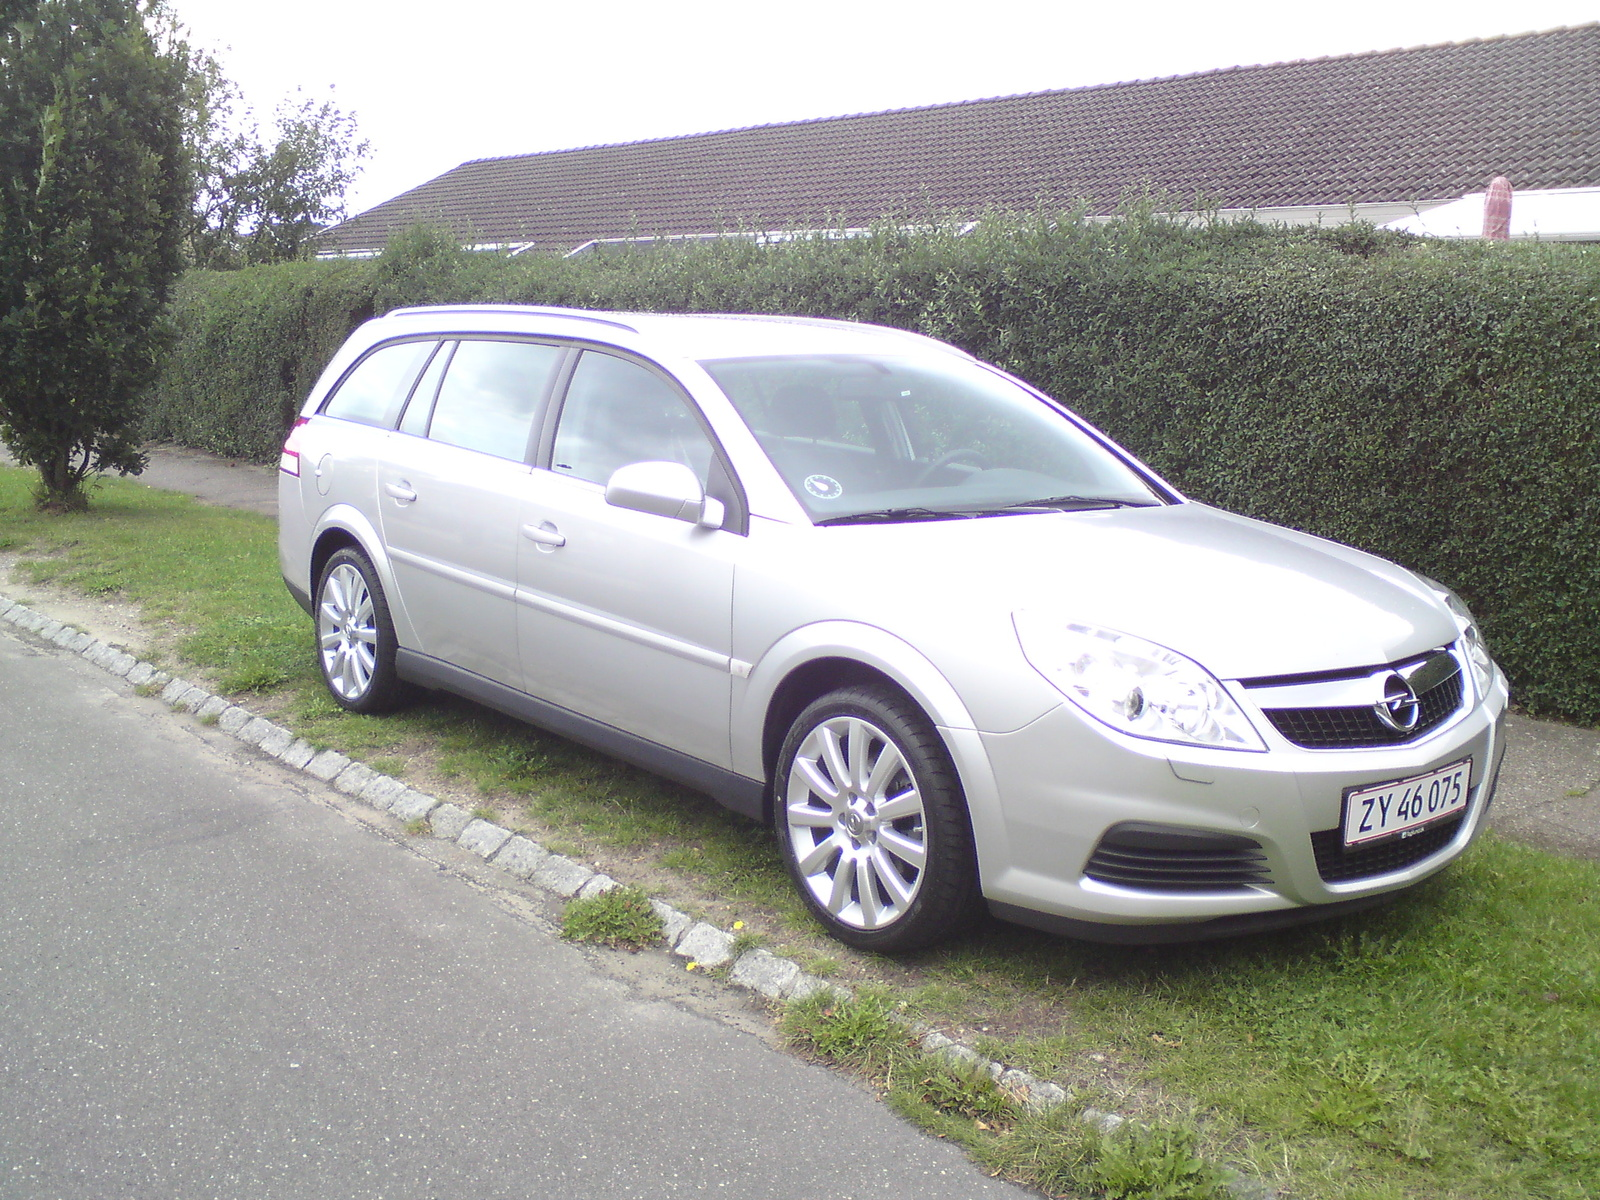 2008 Opel Vectra picture, exterior